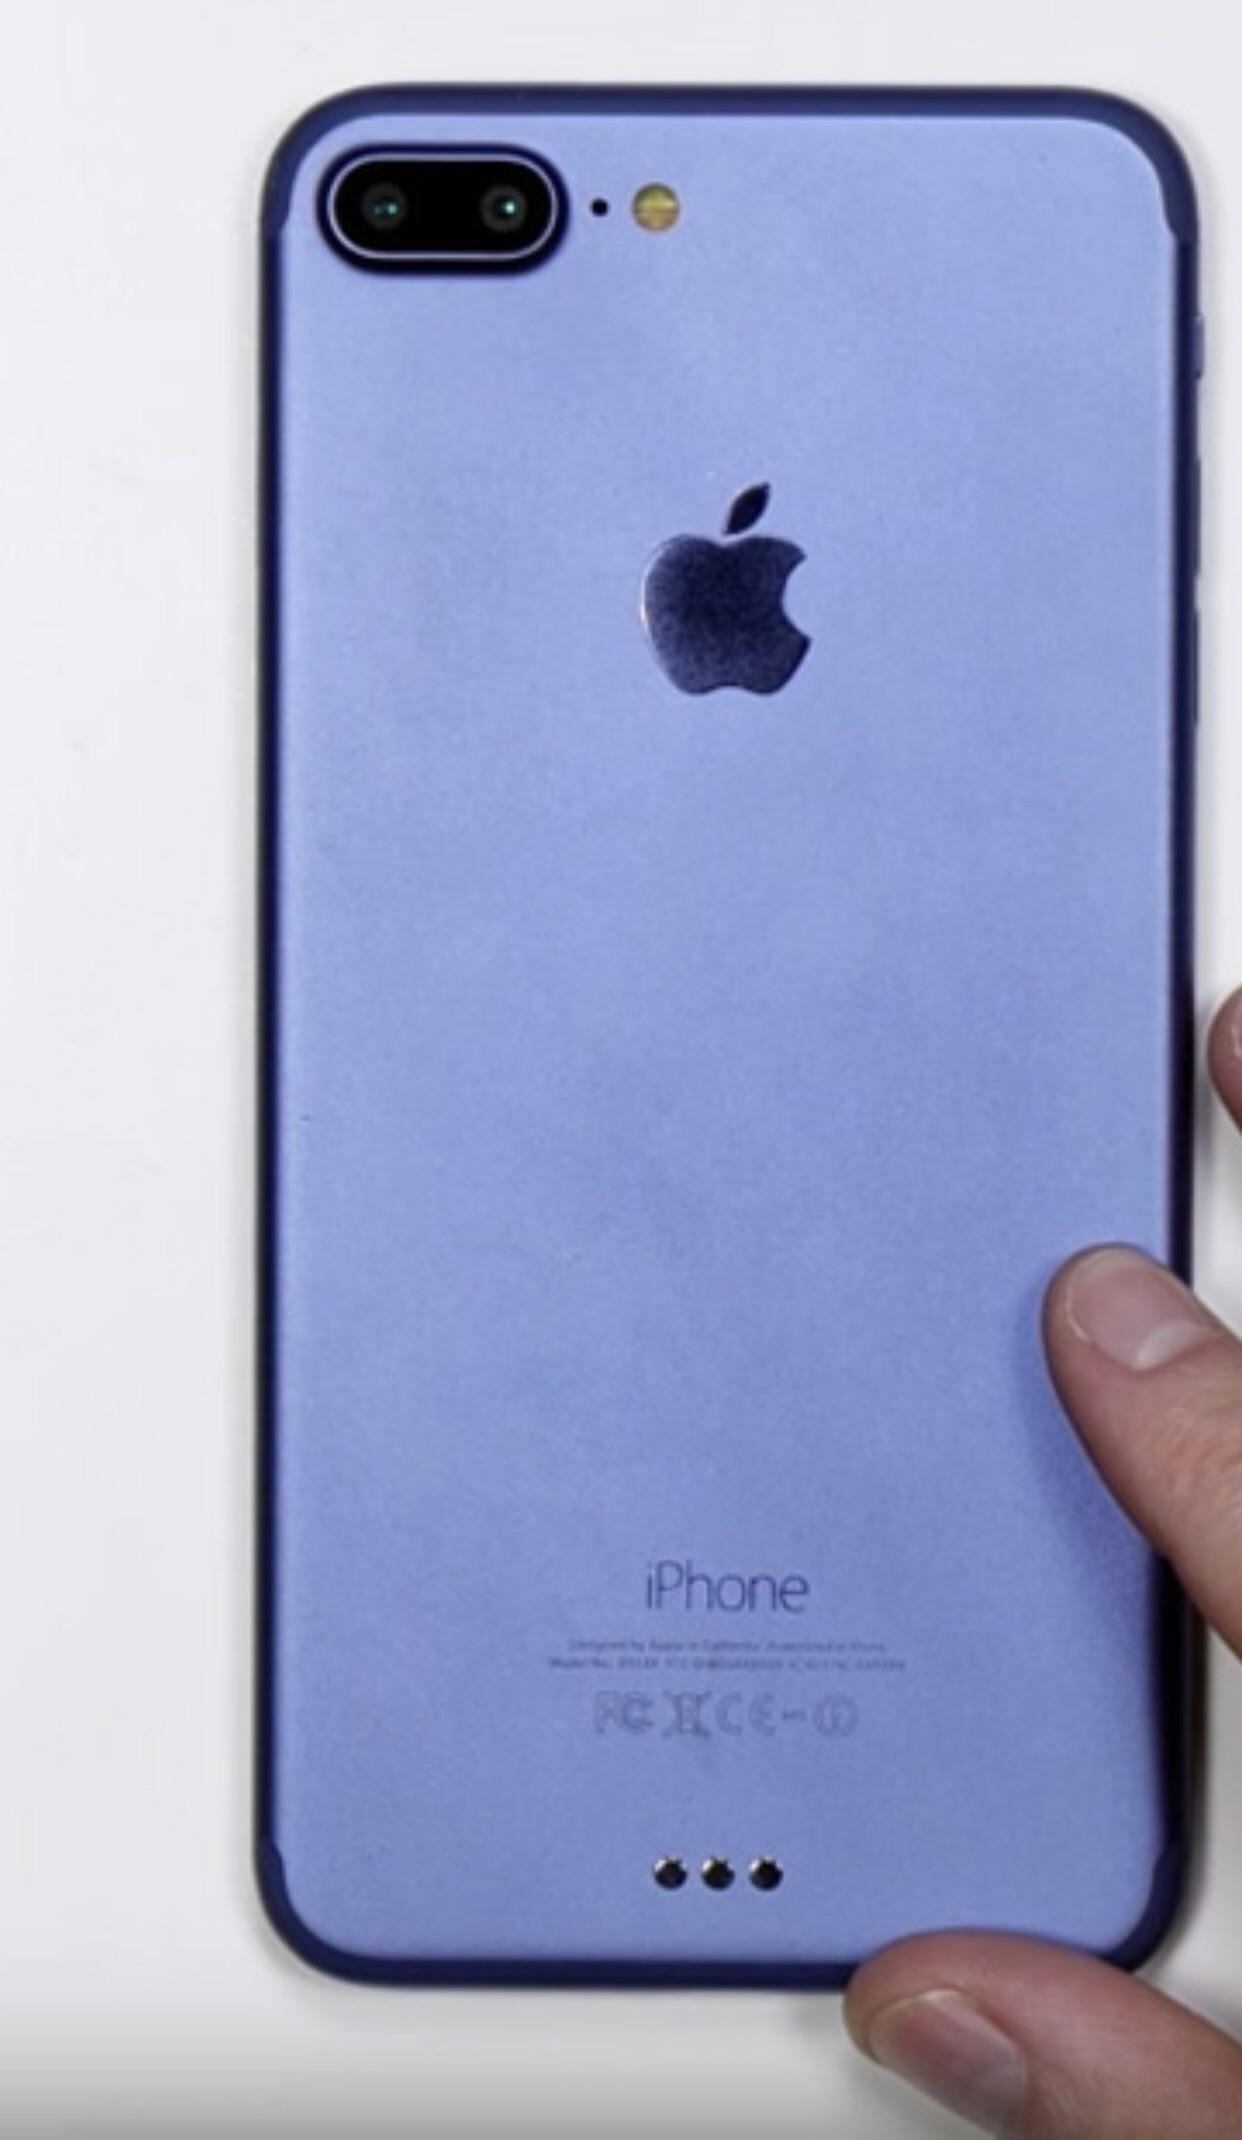 I'm looking for an iPhone 7 Plus housing similar to the dark blue mock-up from before the phone was released or a gray slate color like the 6, I've looked everywhere and I can't find anything im-looking-for-an-iphone-7-plus-housing-similar-to-the-dark-blue-mock-up-from-before-the-phone-was-released-or-a-gray-slate-color-like-the-6-ive-looked-everywhere-and-i-can